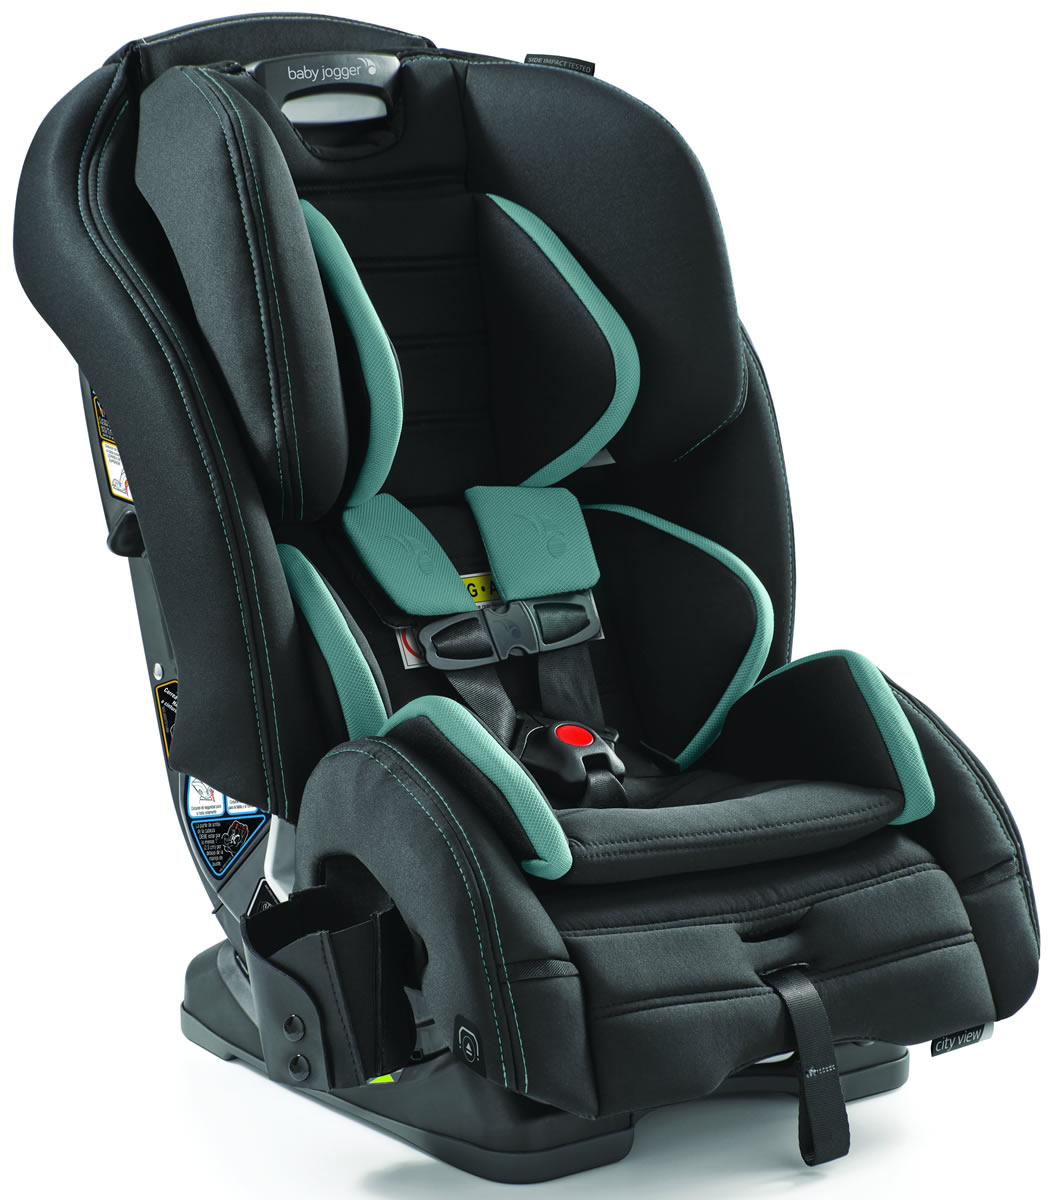 Baby Jogger City View All-In-One Convertible Car Seat - M...